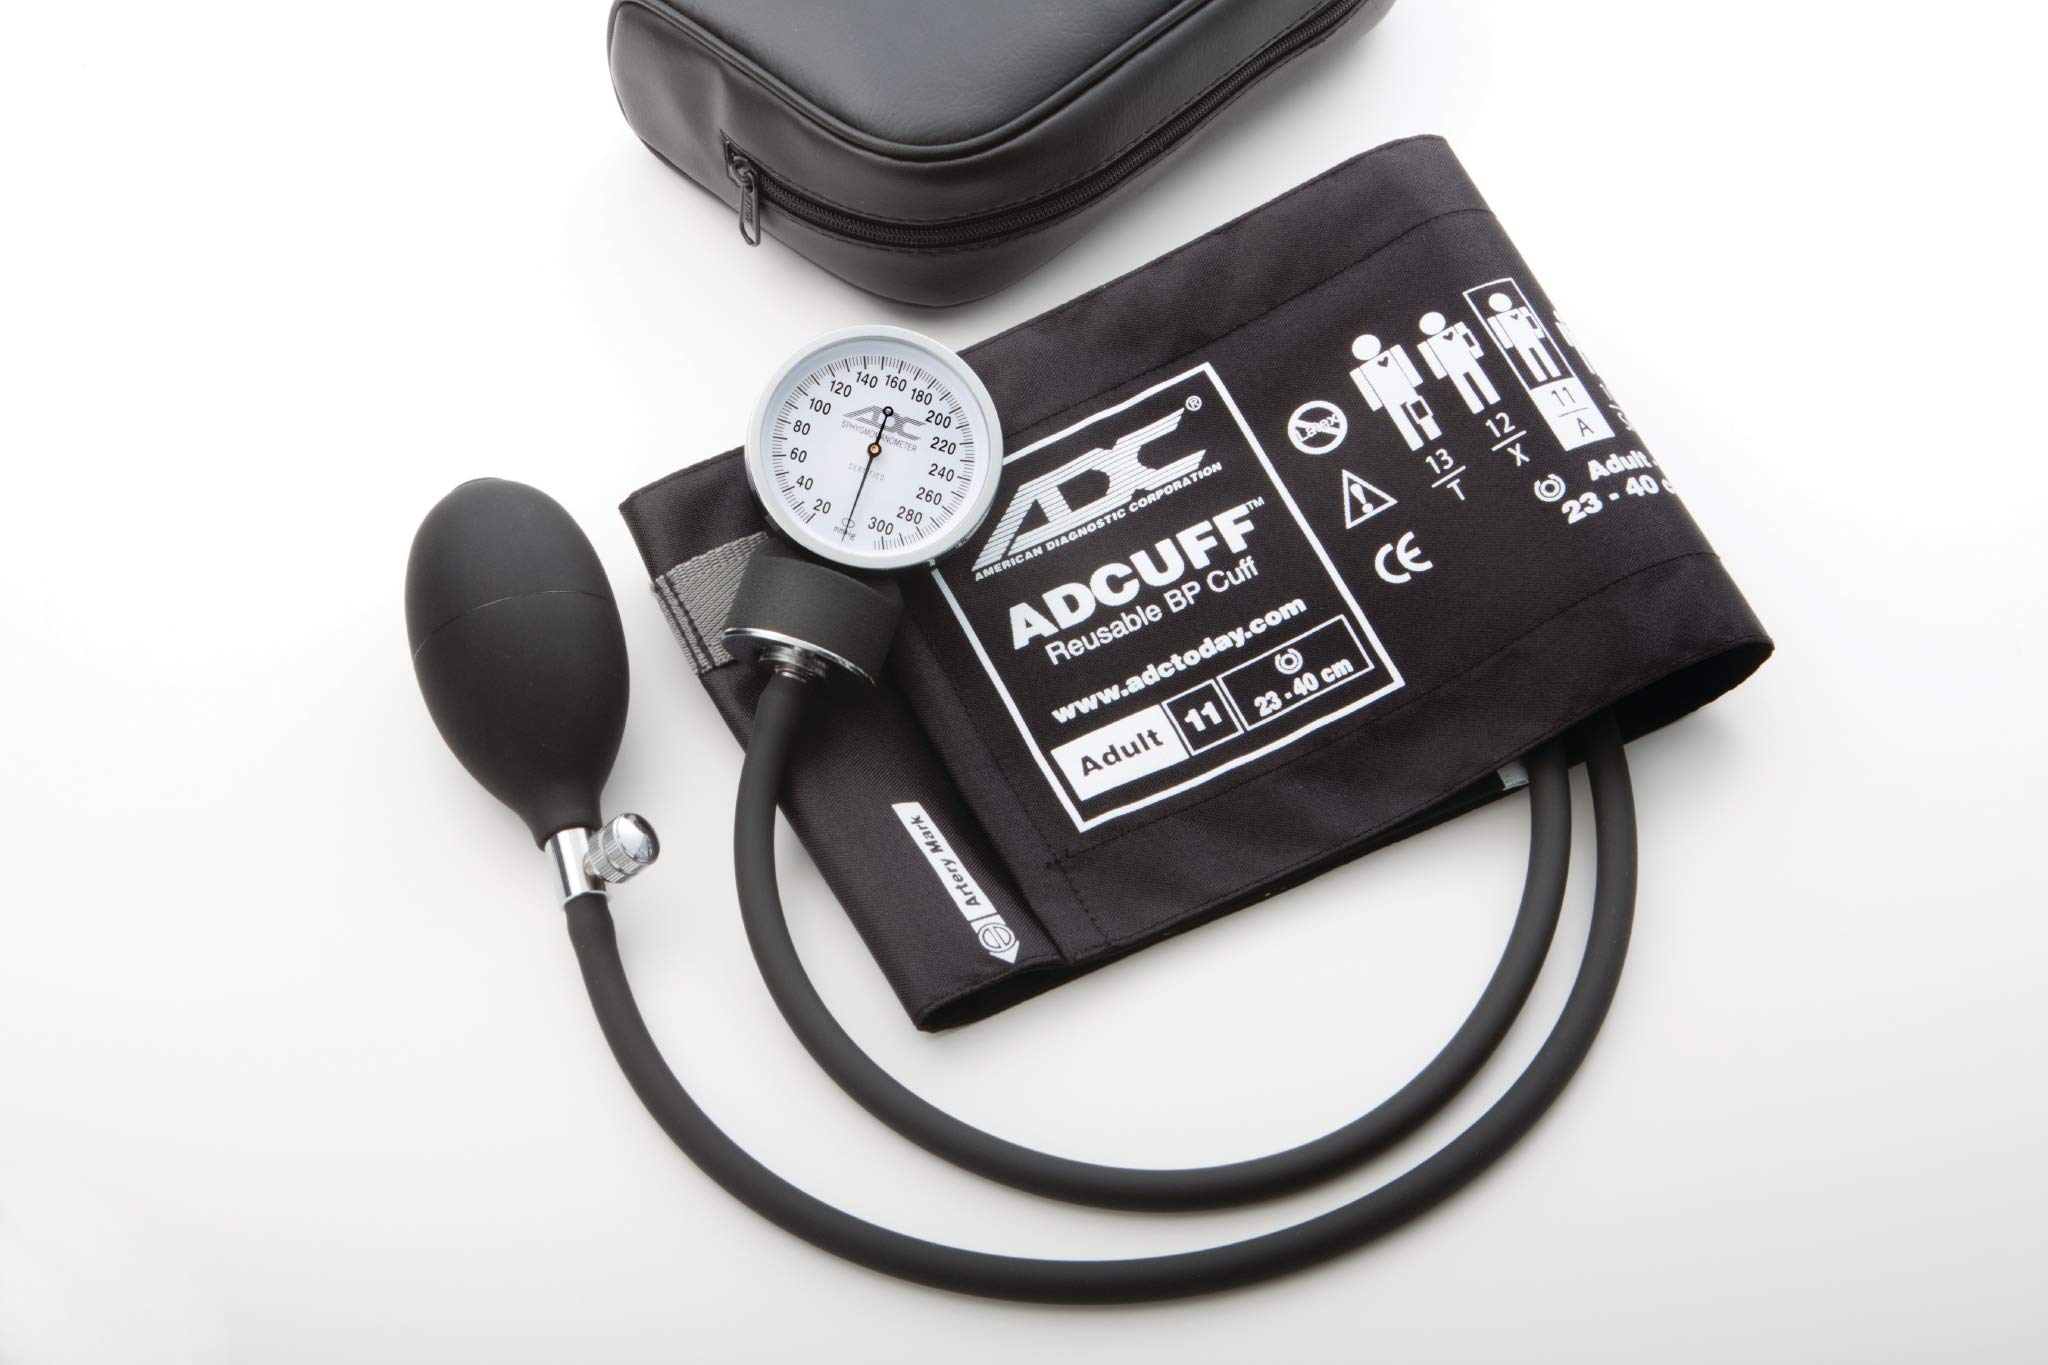 ADC 760-11ABK Prosphyg 760 Pocket Aneroid Sphygmomanometer with Adcuff Nylon Blood Pressure Cuff,